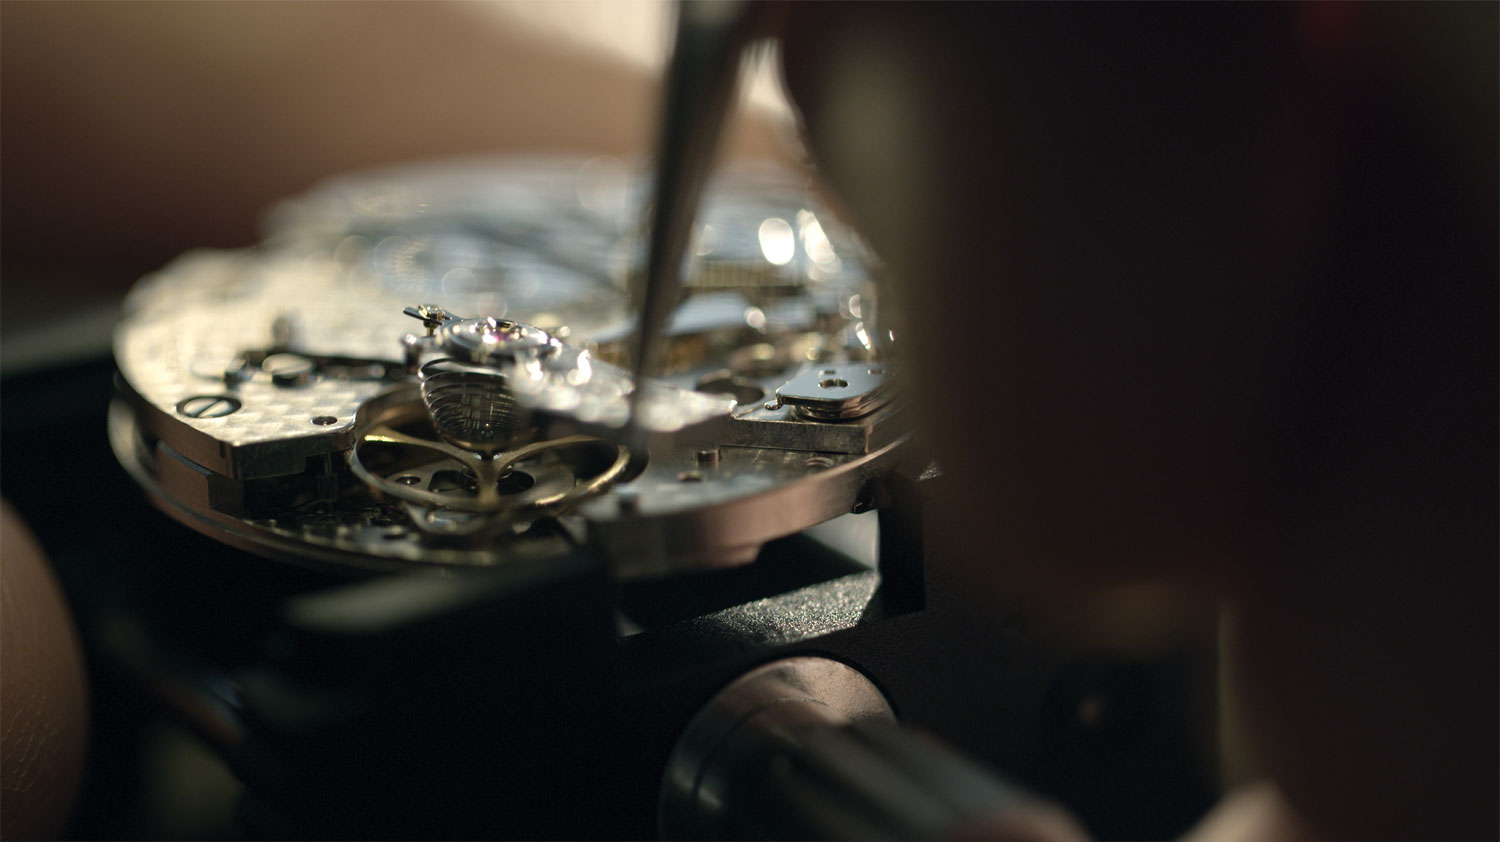 The new Tiffany & Co. CT60 Men's watch collection